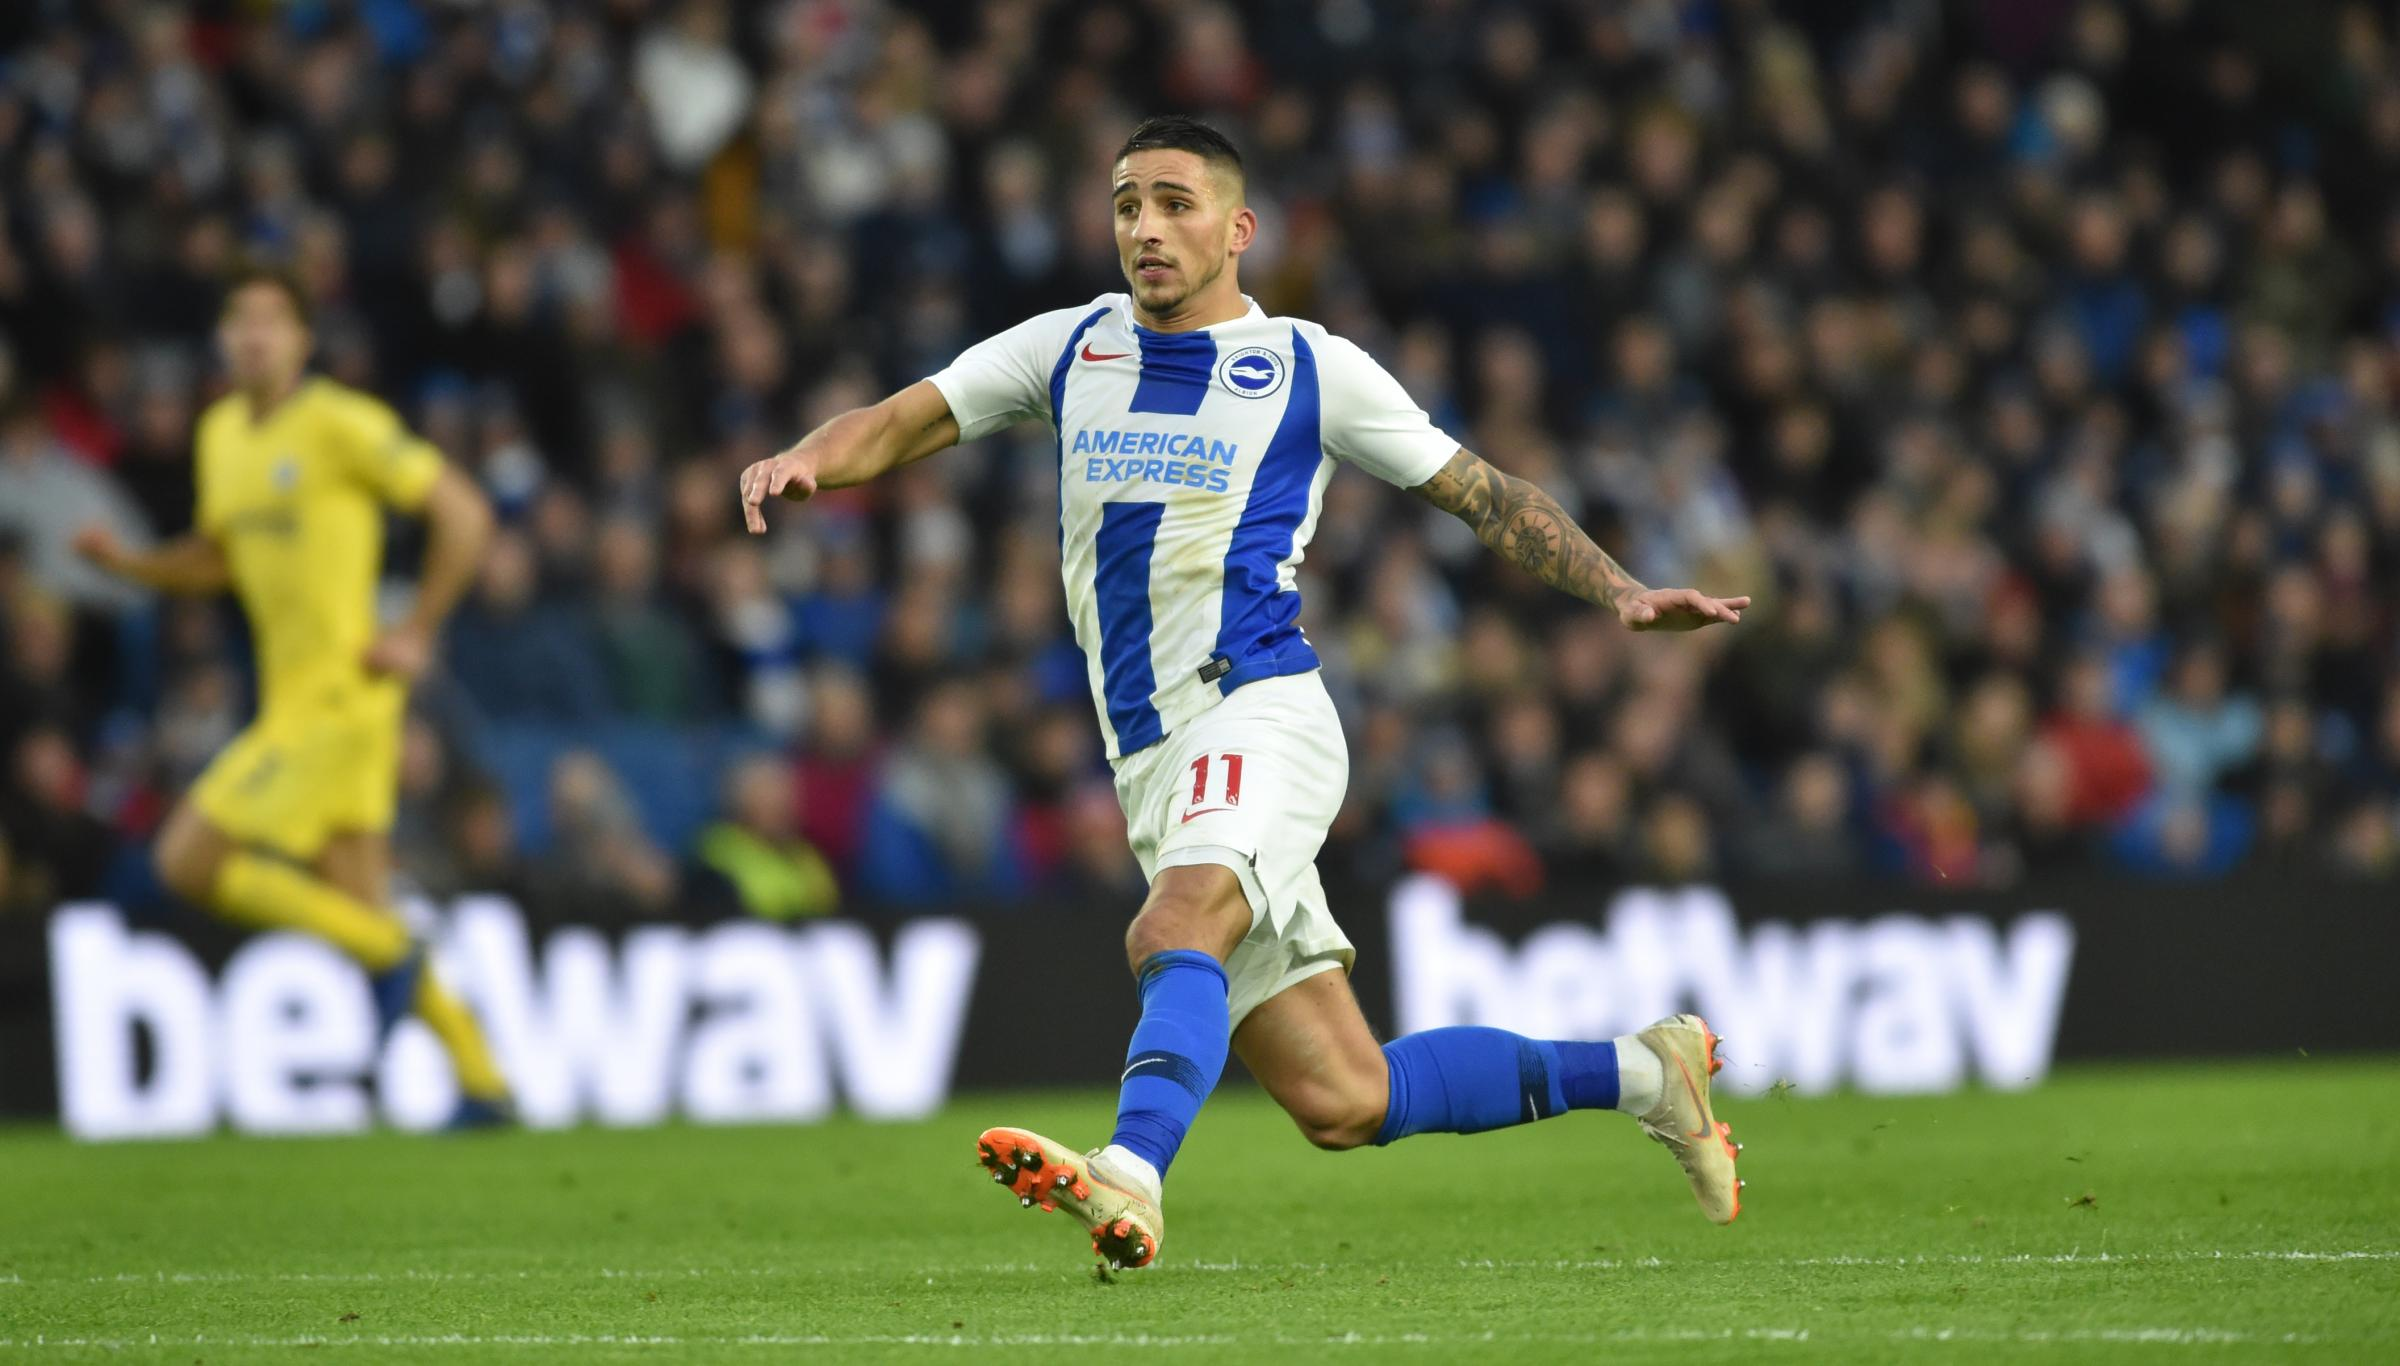 Fulham chief: We've been targeting Knockaert for years